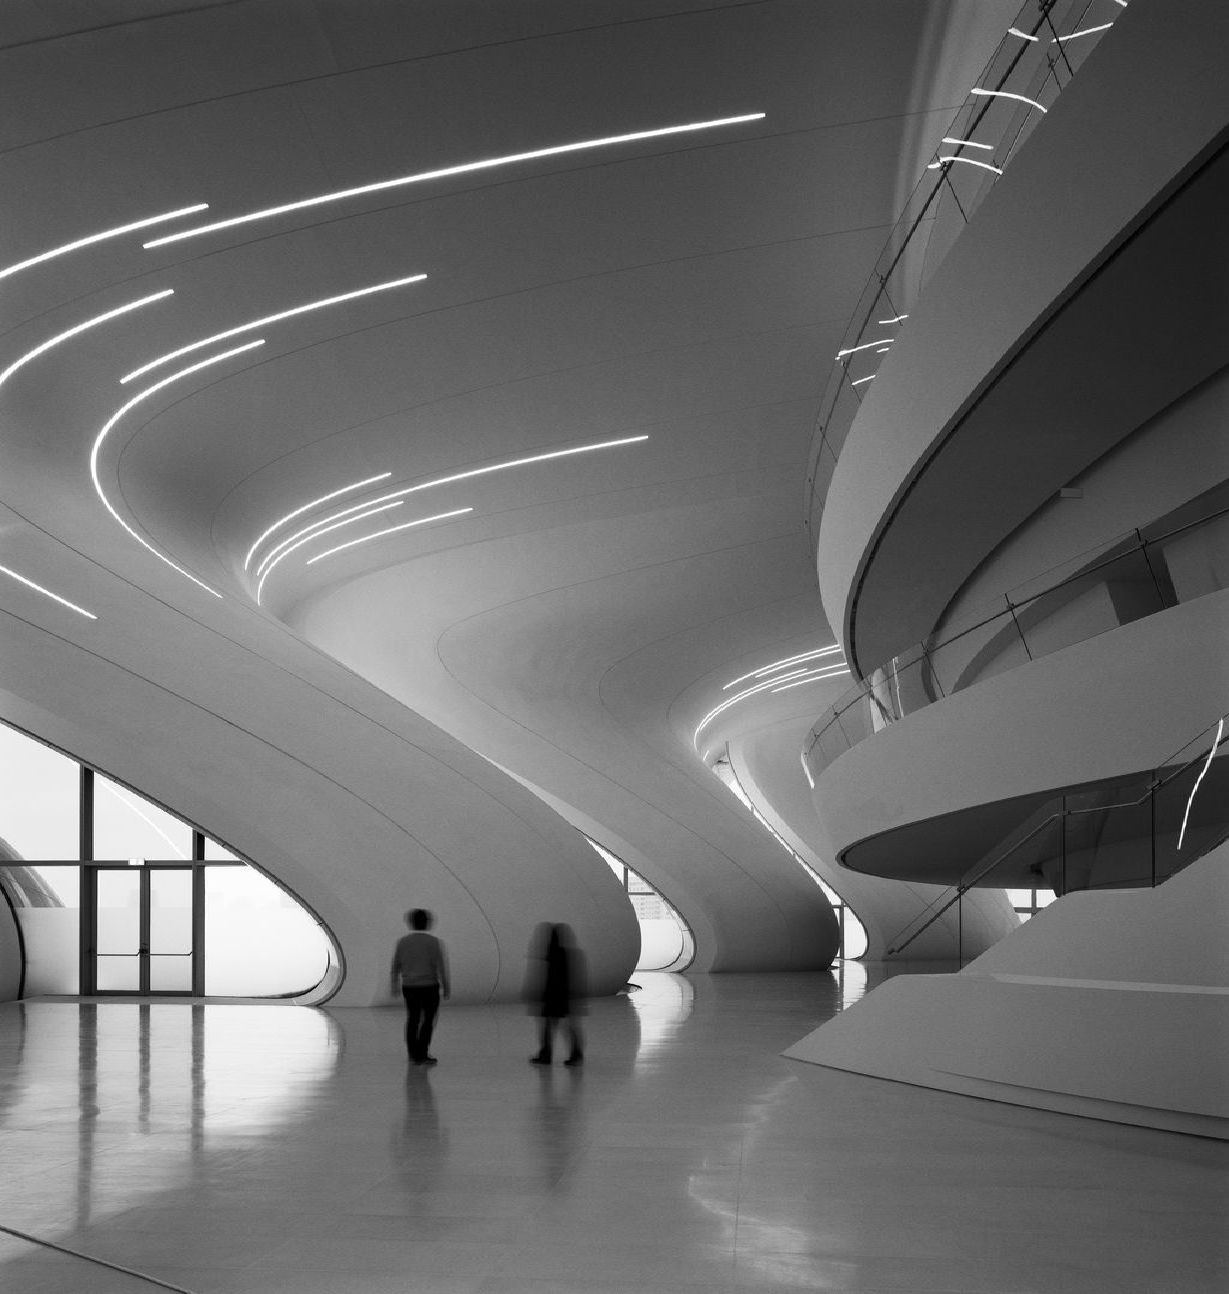 zaha m hadid The project is zaha hadid's first permanent residence in new york with only 39 properties - the most desirable valued at $65m our task was to create a positioning, identity and marketing platform worthy.